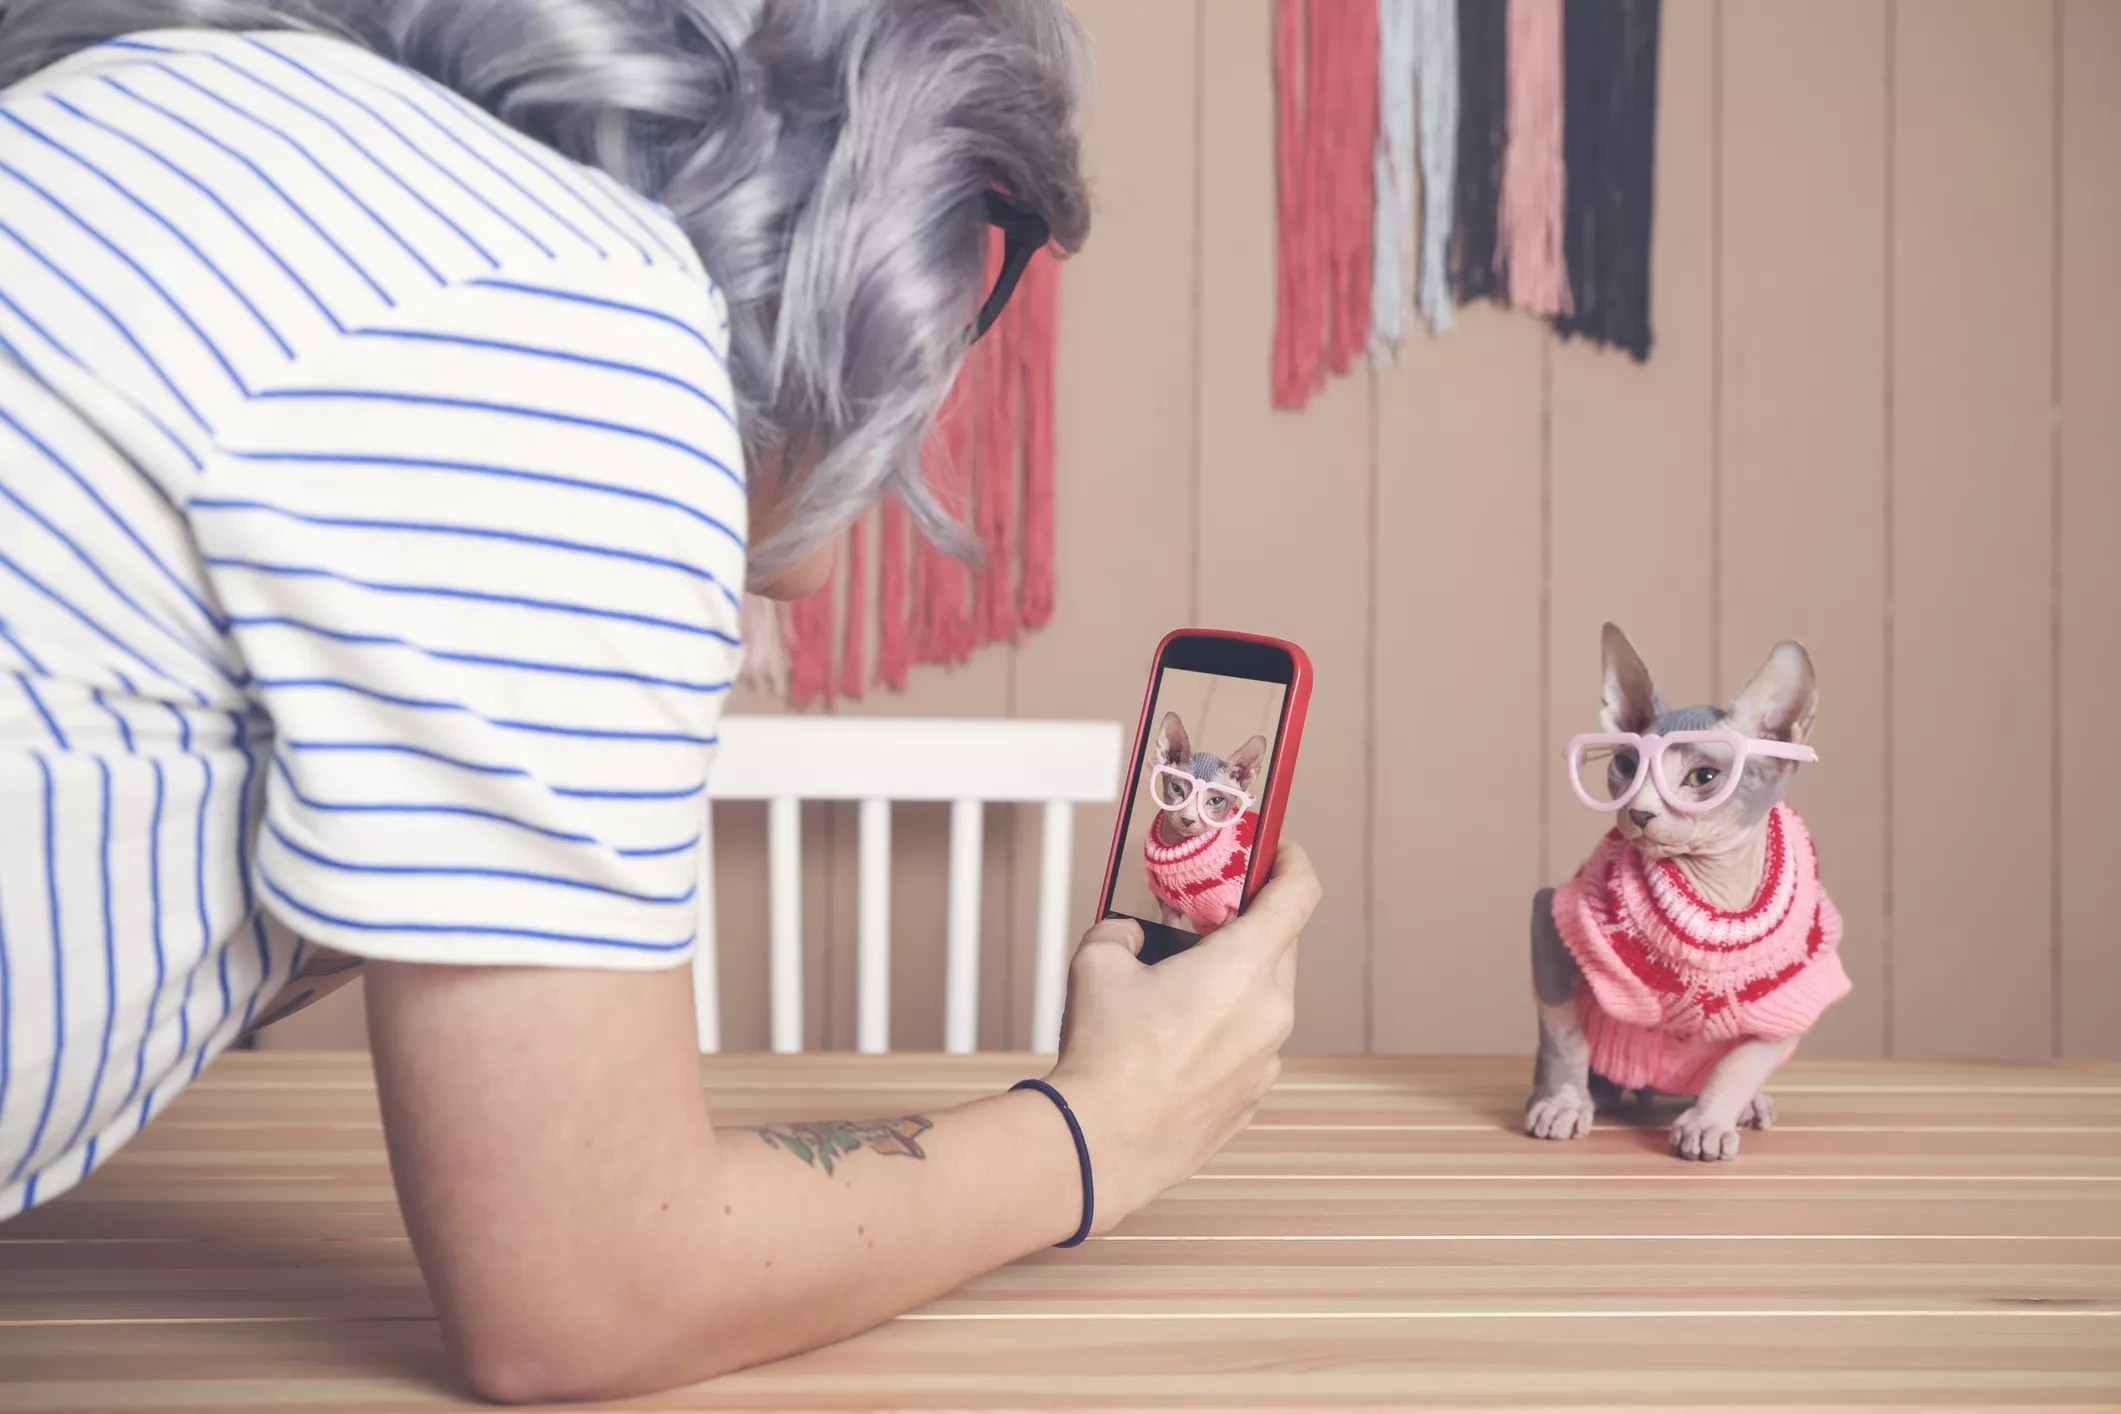 An image of a woman taking a photo of a dressed up cat with her smartphone.